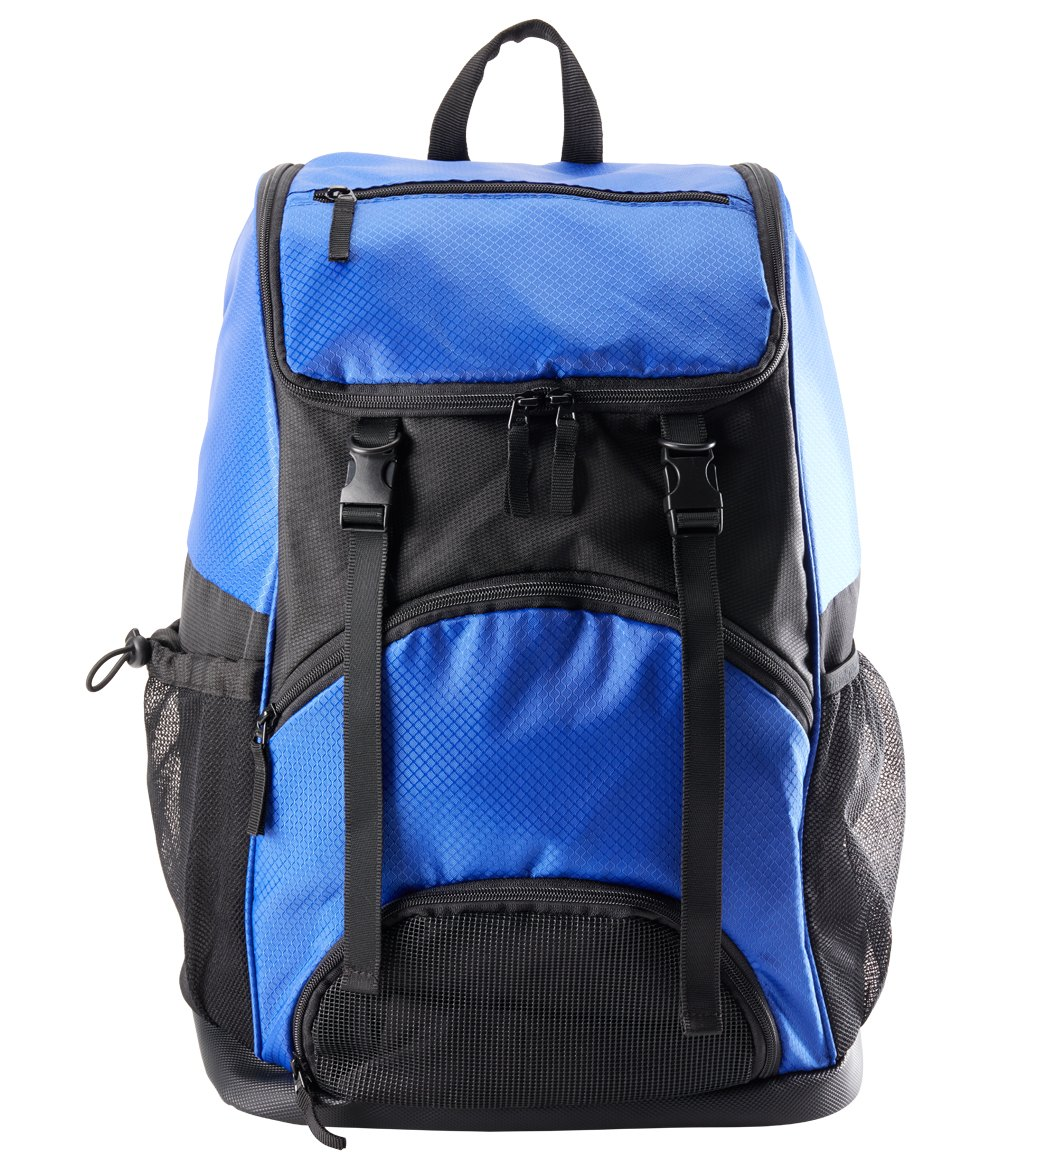 d4cc4e8e49 Sporti Large Athletic Backpack at SwimOutlet.com